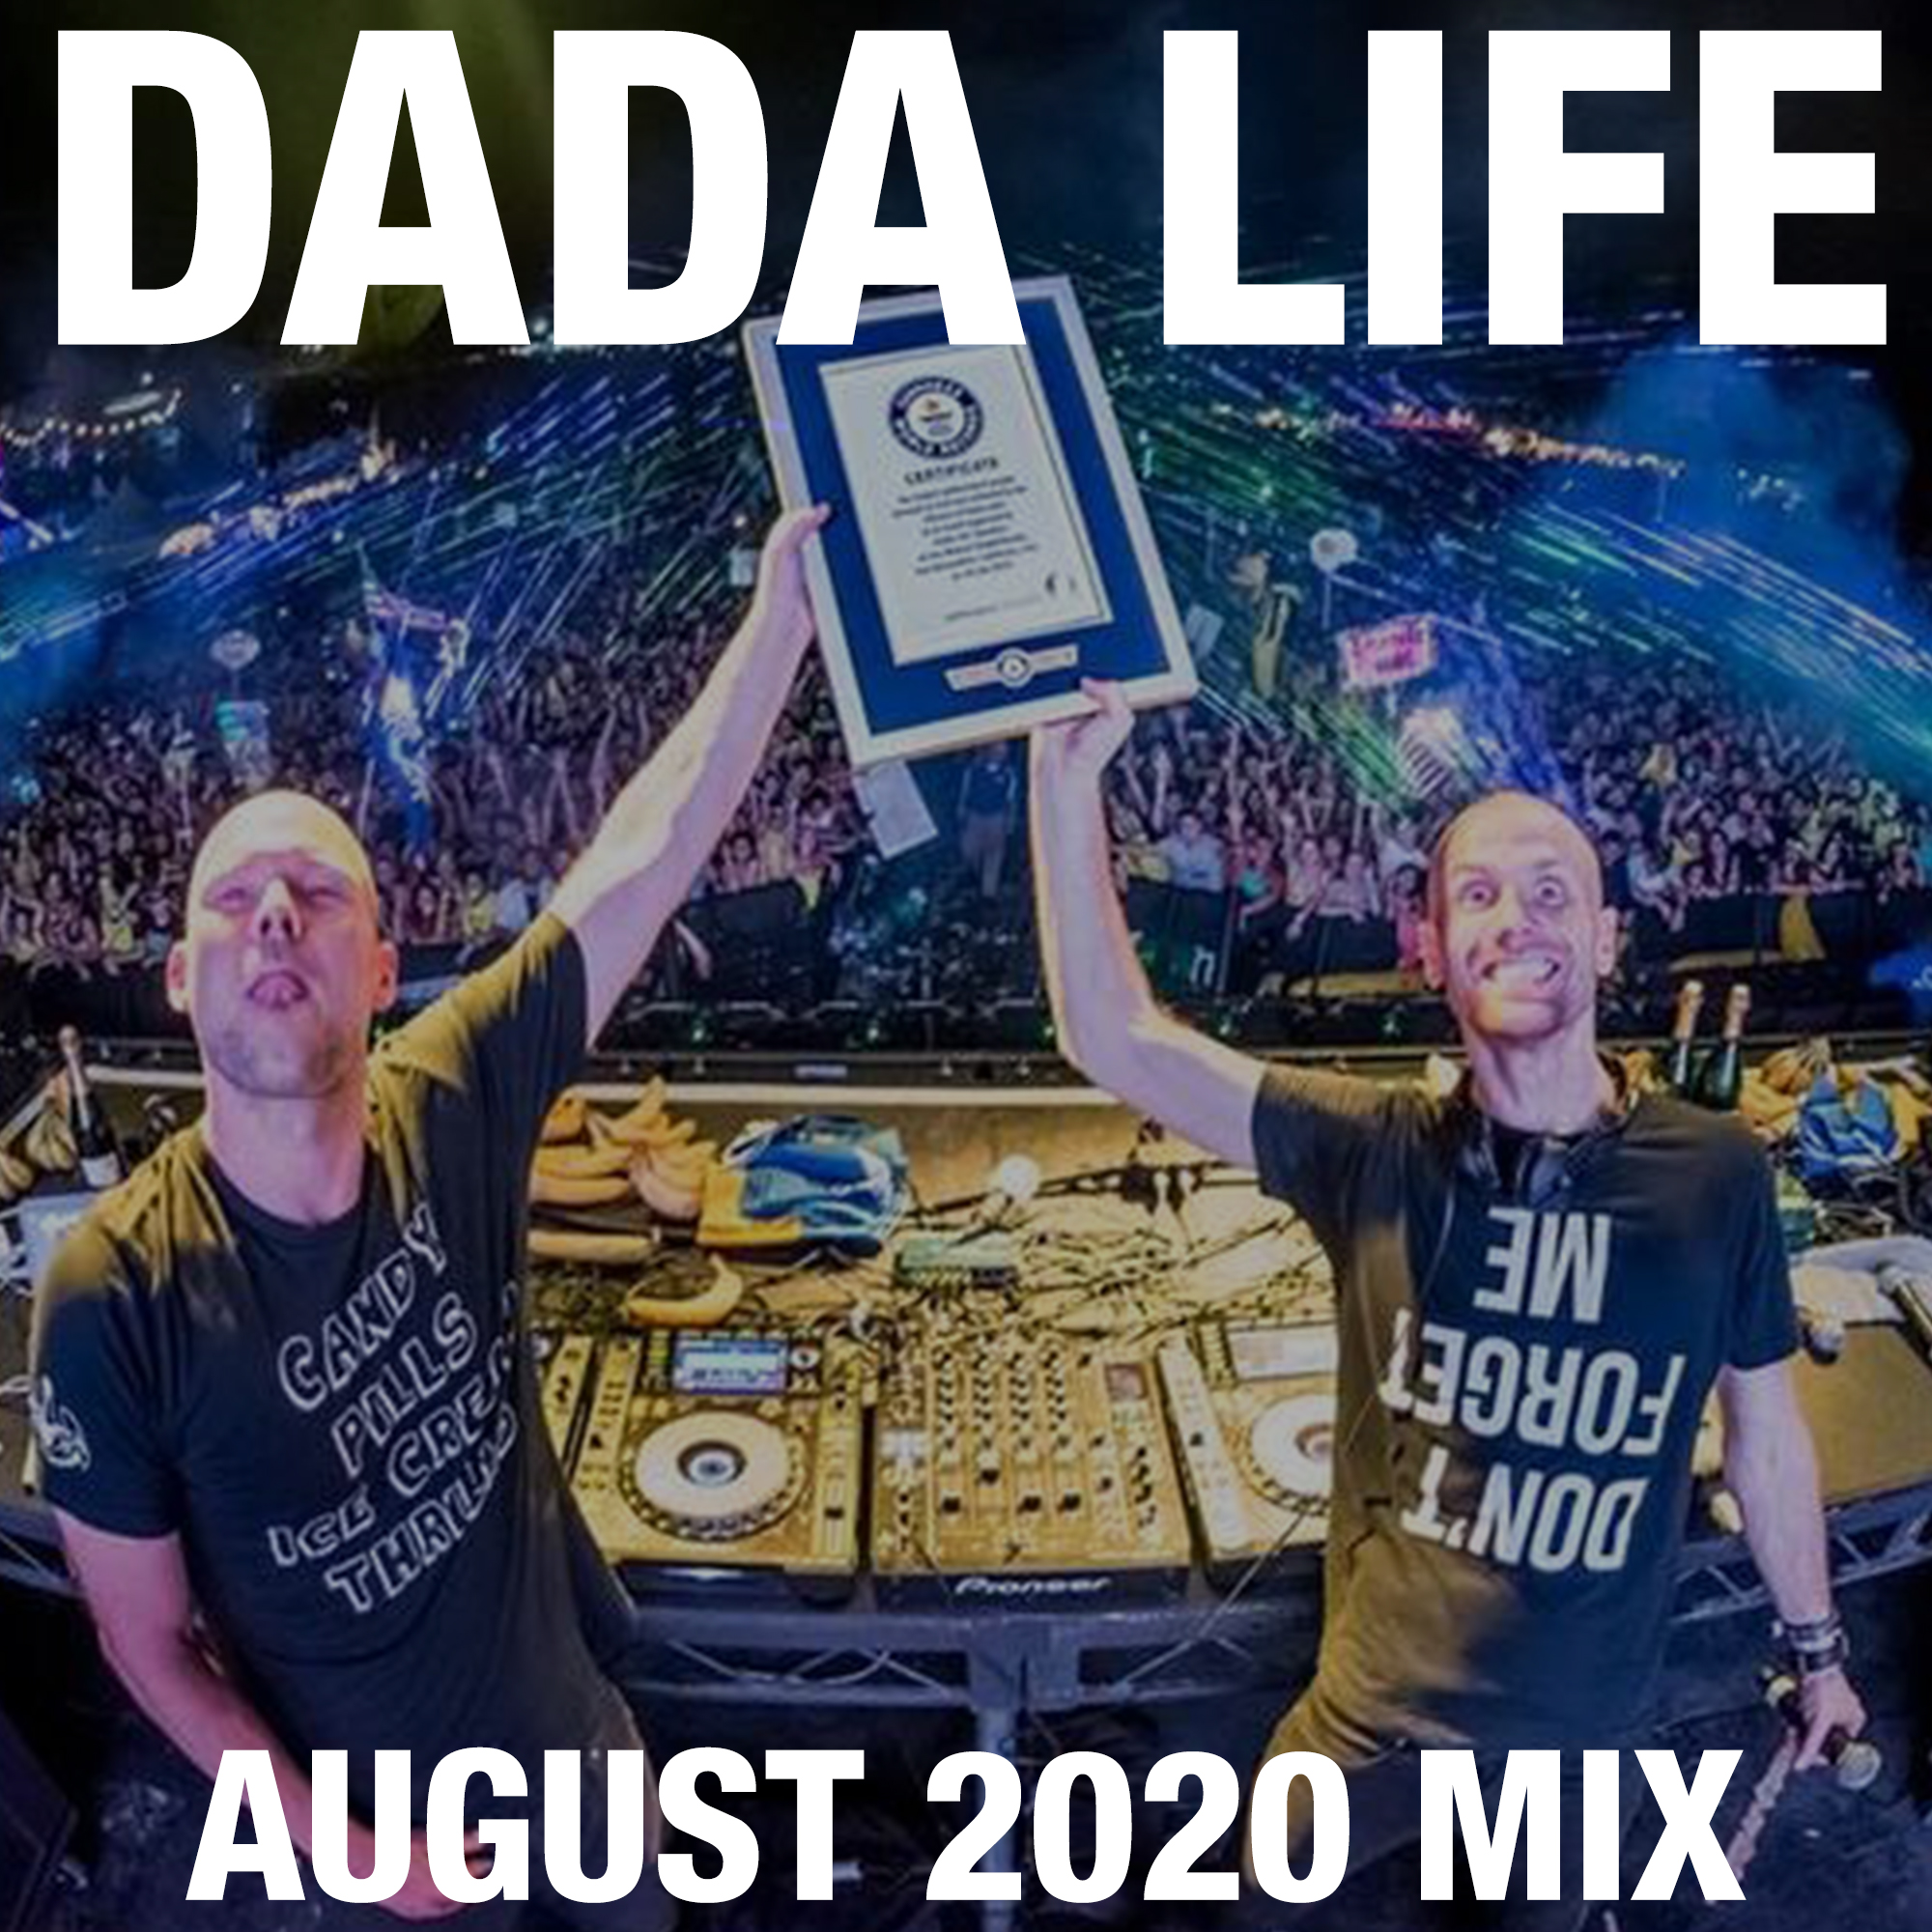 Dada Land August 2020 Mix show art